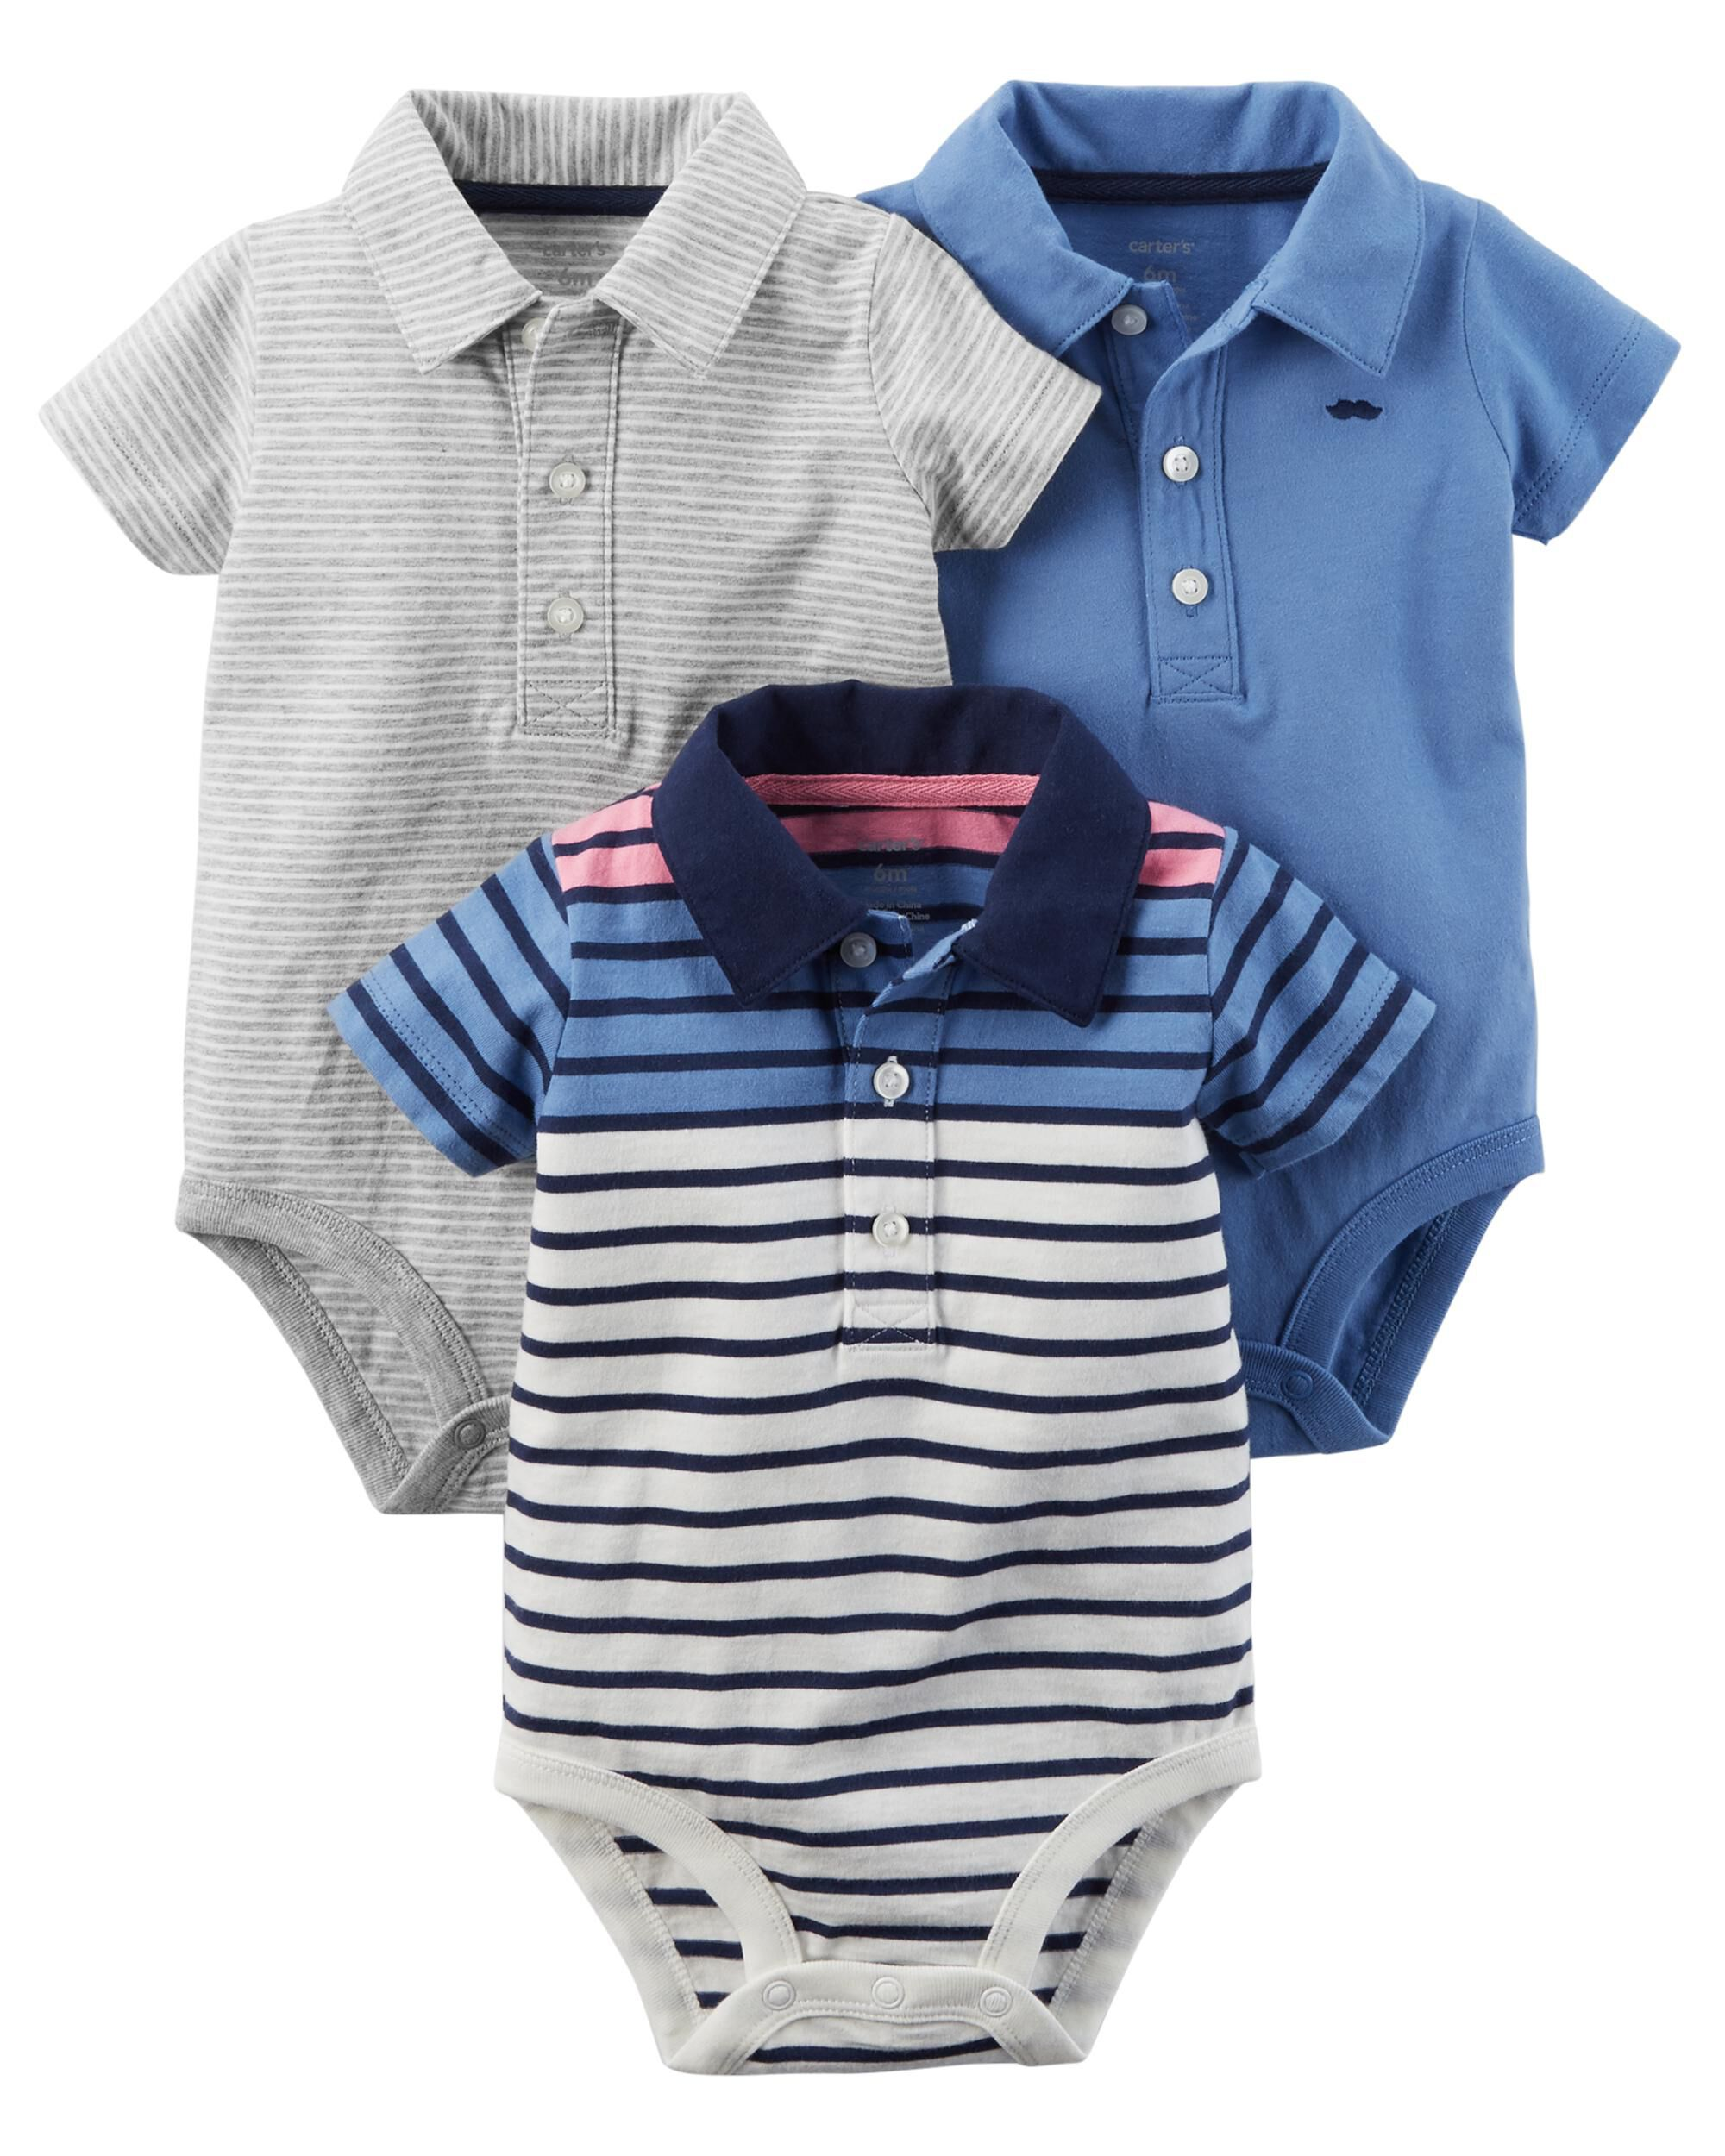 3 Pack Polo Style Bodysuits